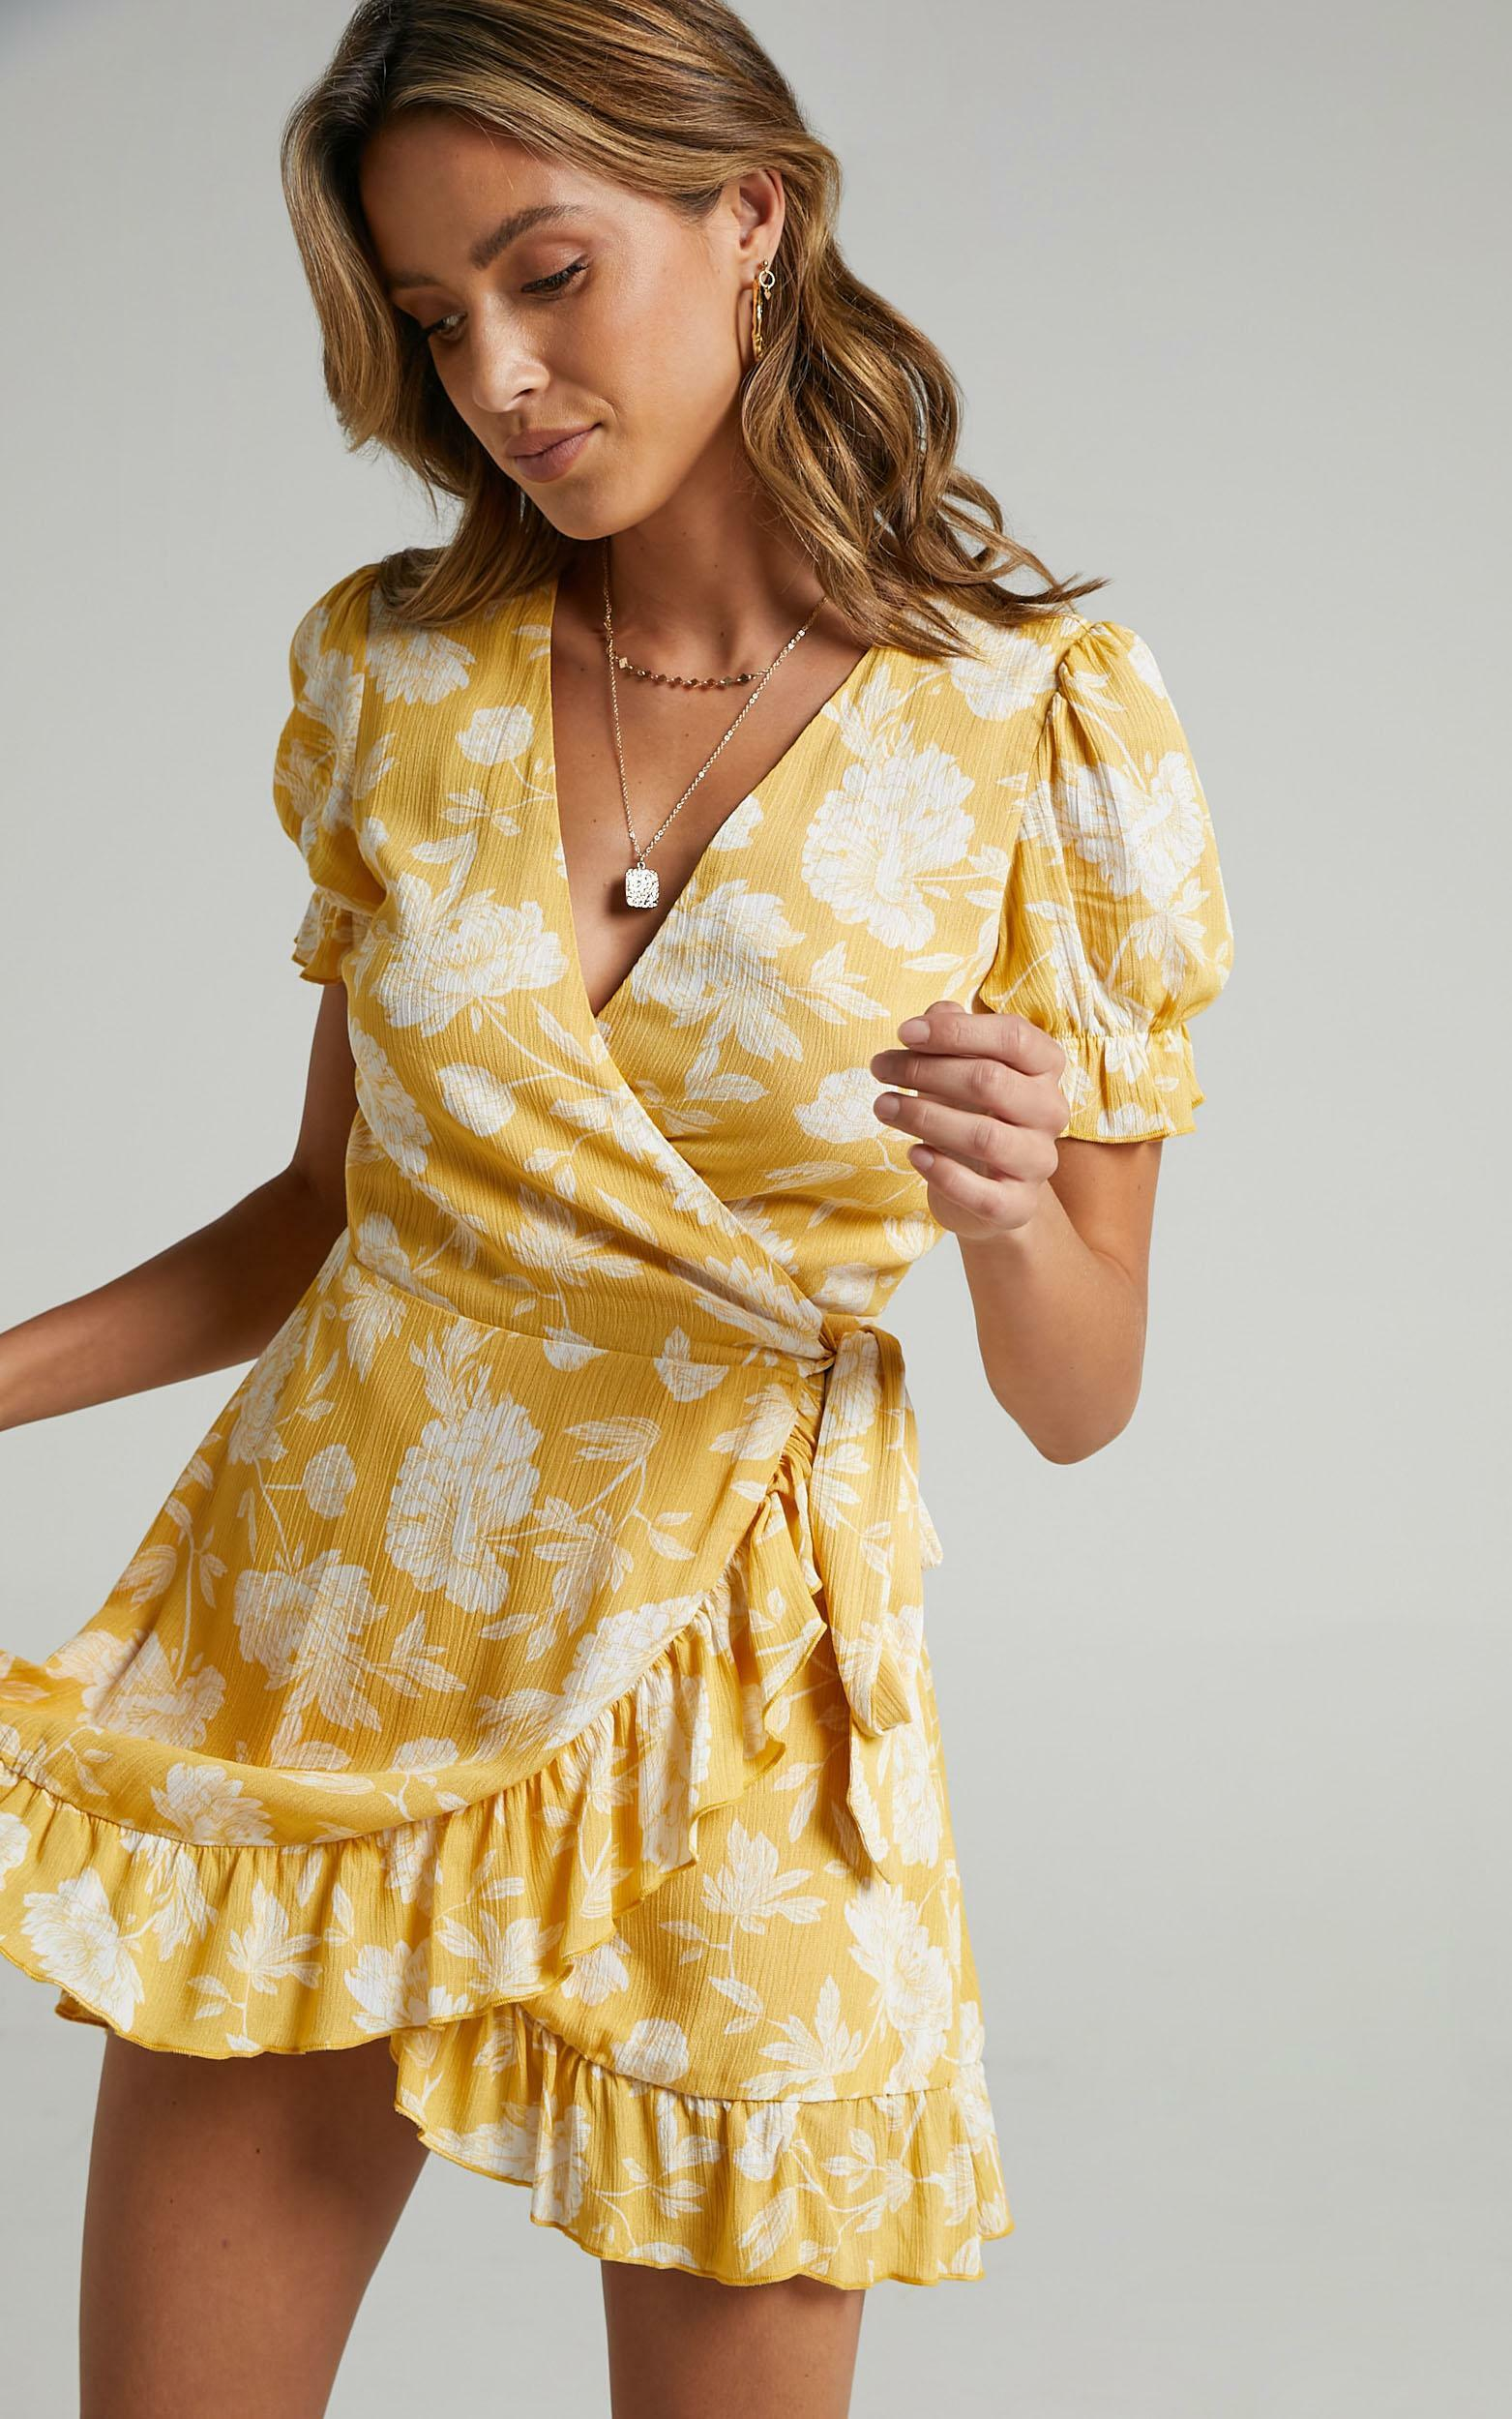 Seaside Views Dress in Yellow Floral - 18, YEL1, hi-res image number null